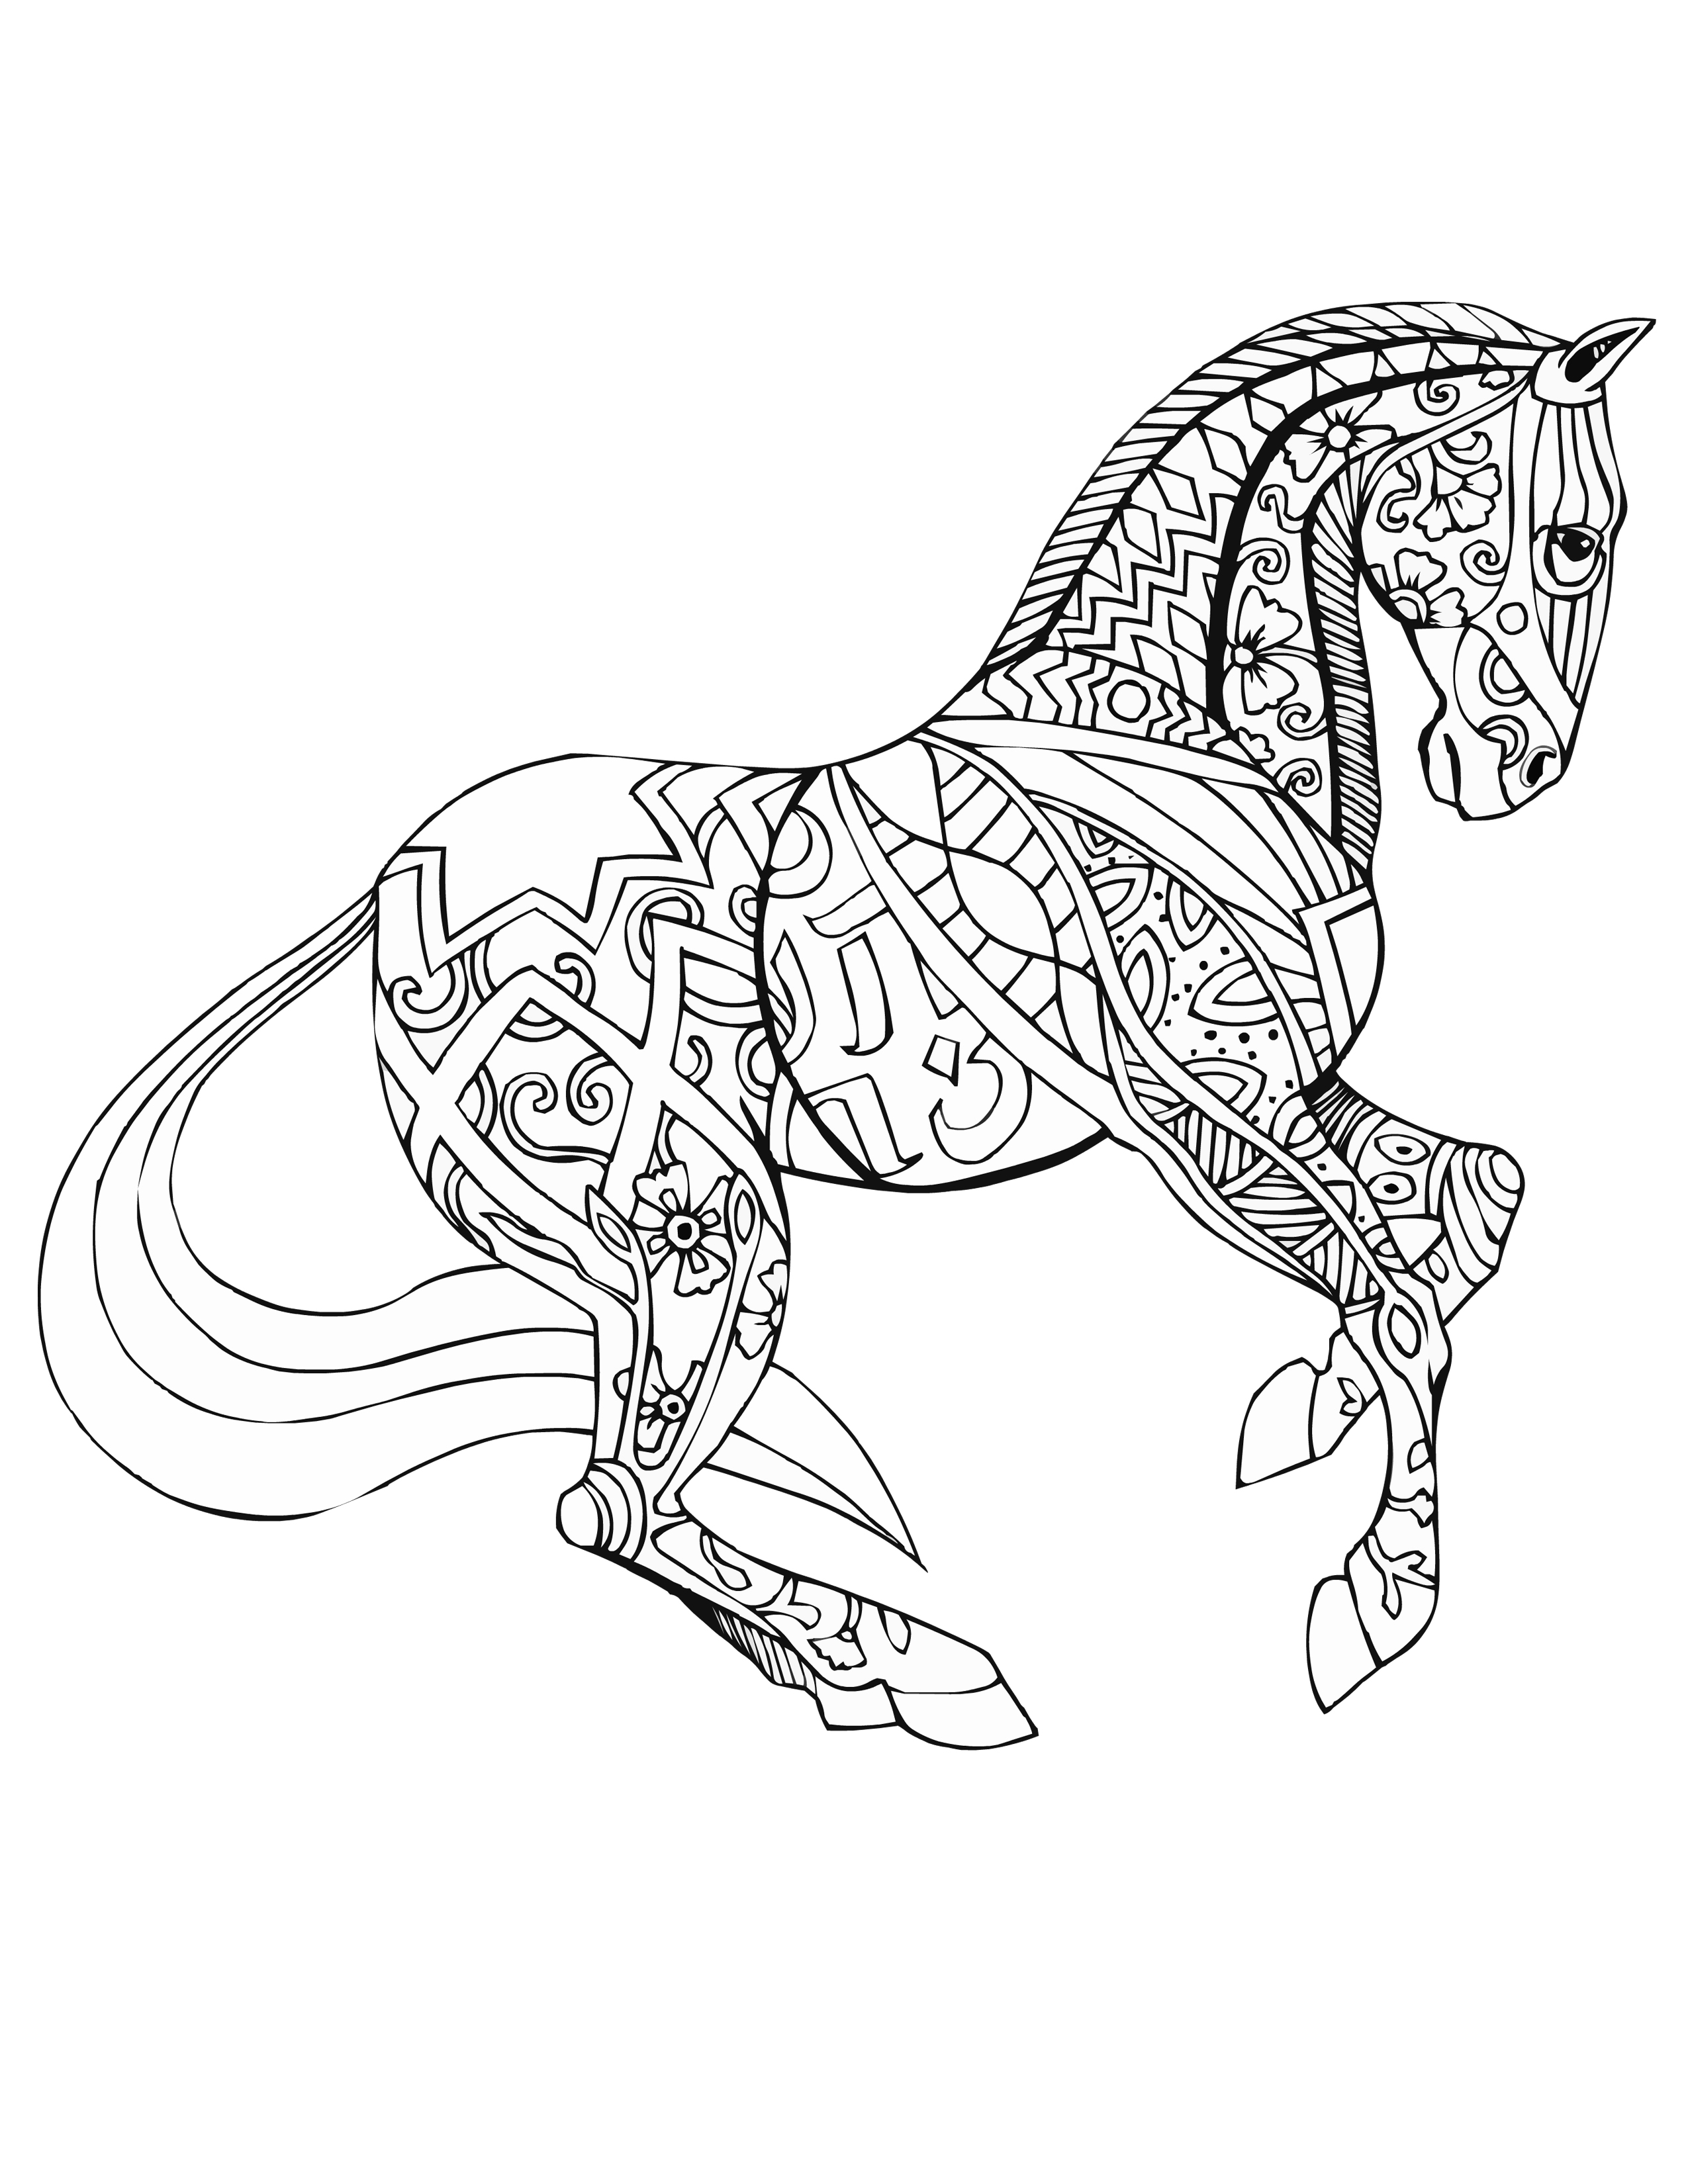 horse drawing coloring pages horse running coloring pages coloring home drawing horse coloring pages